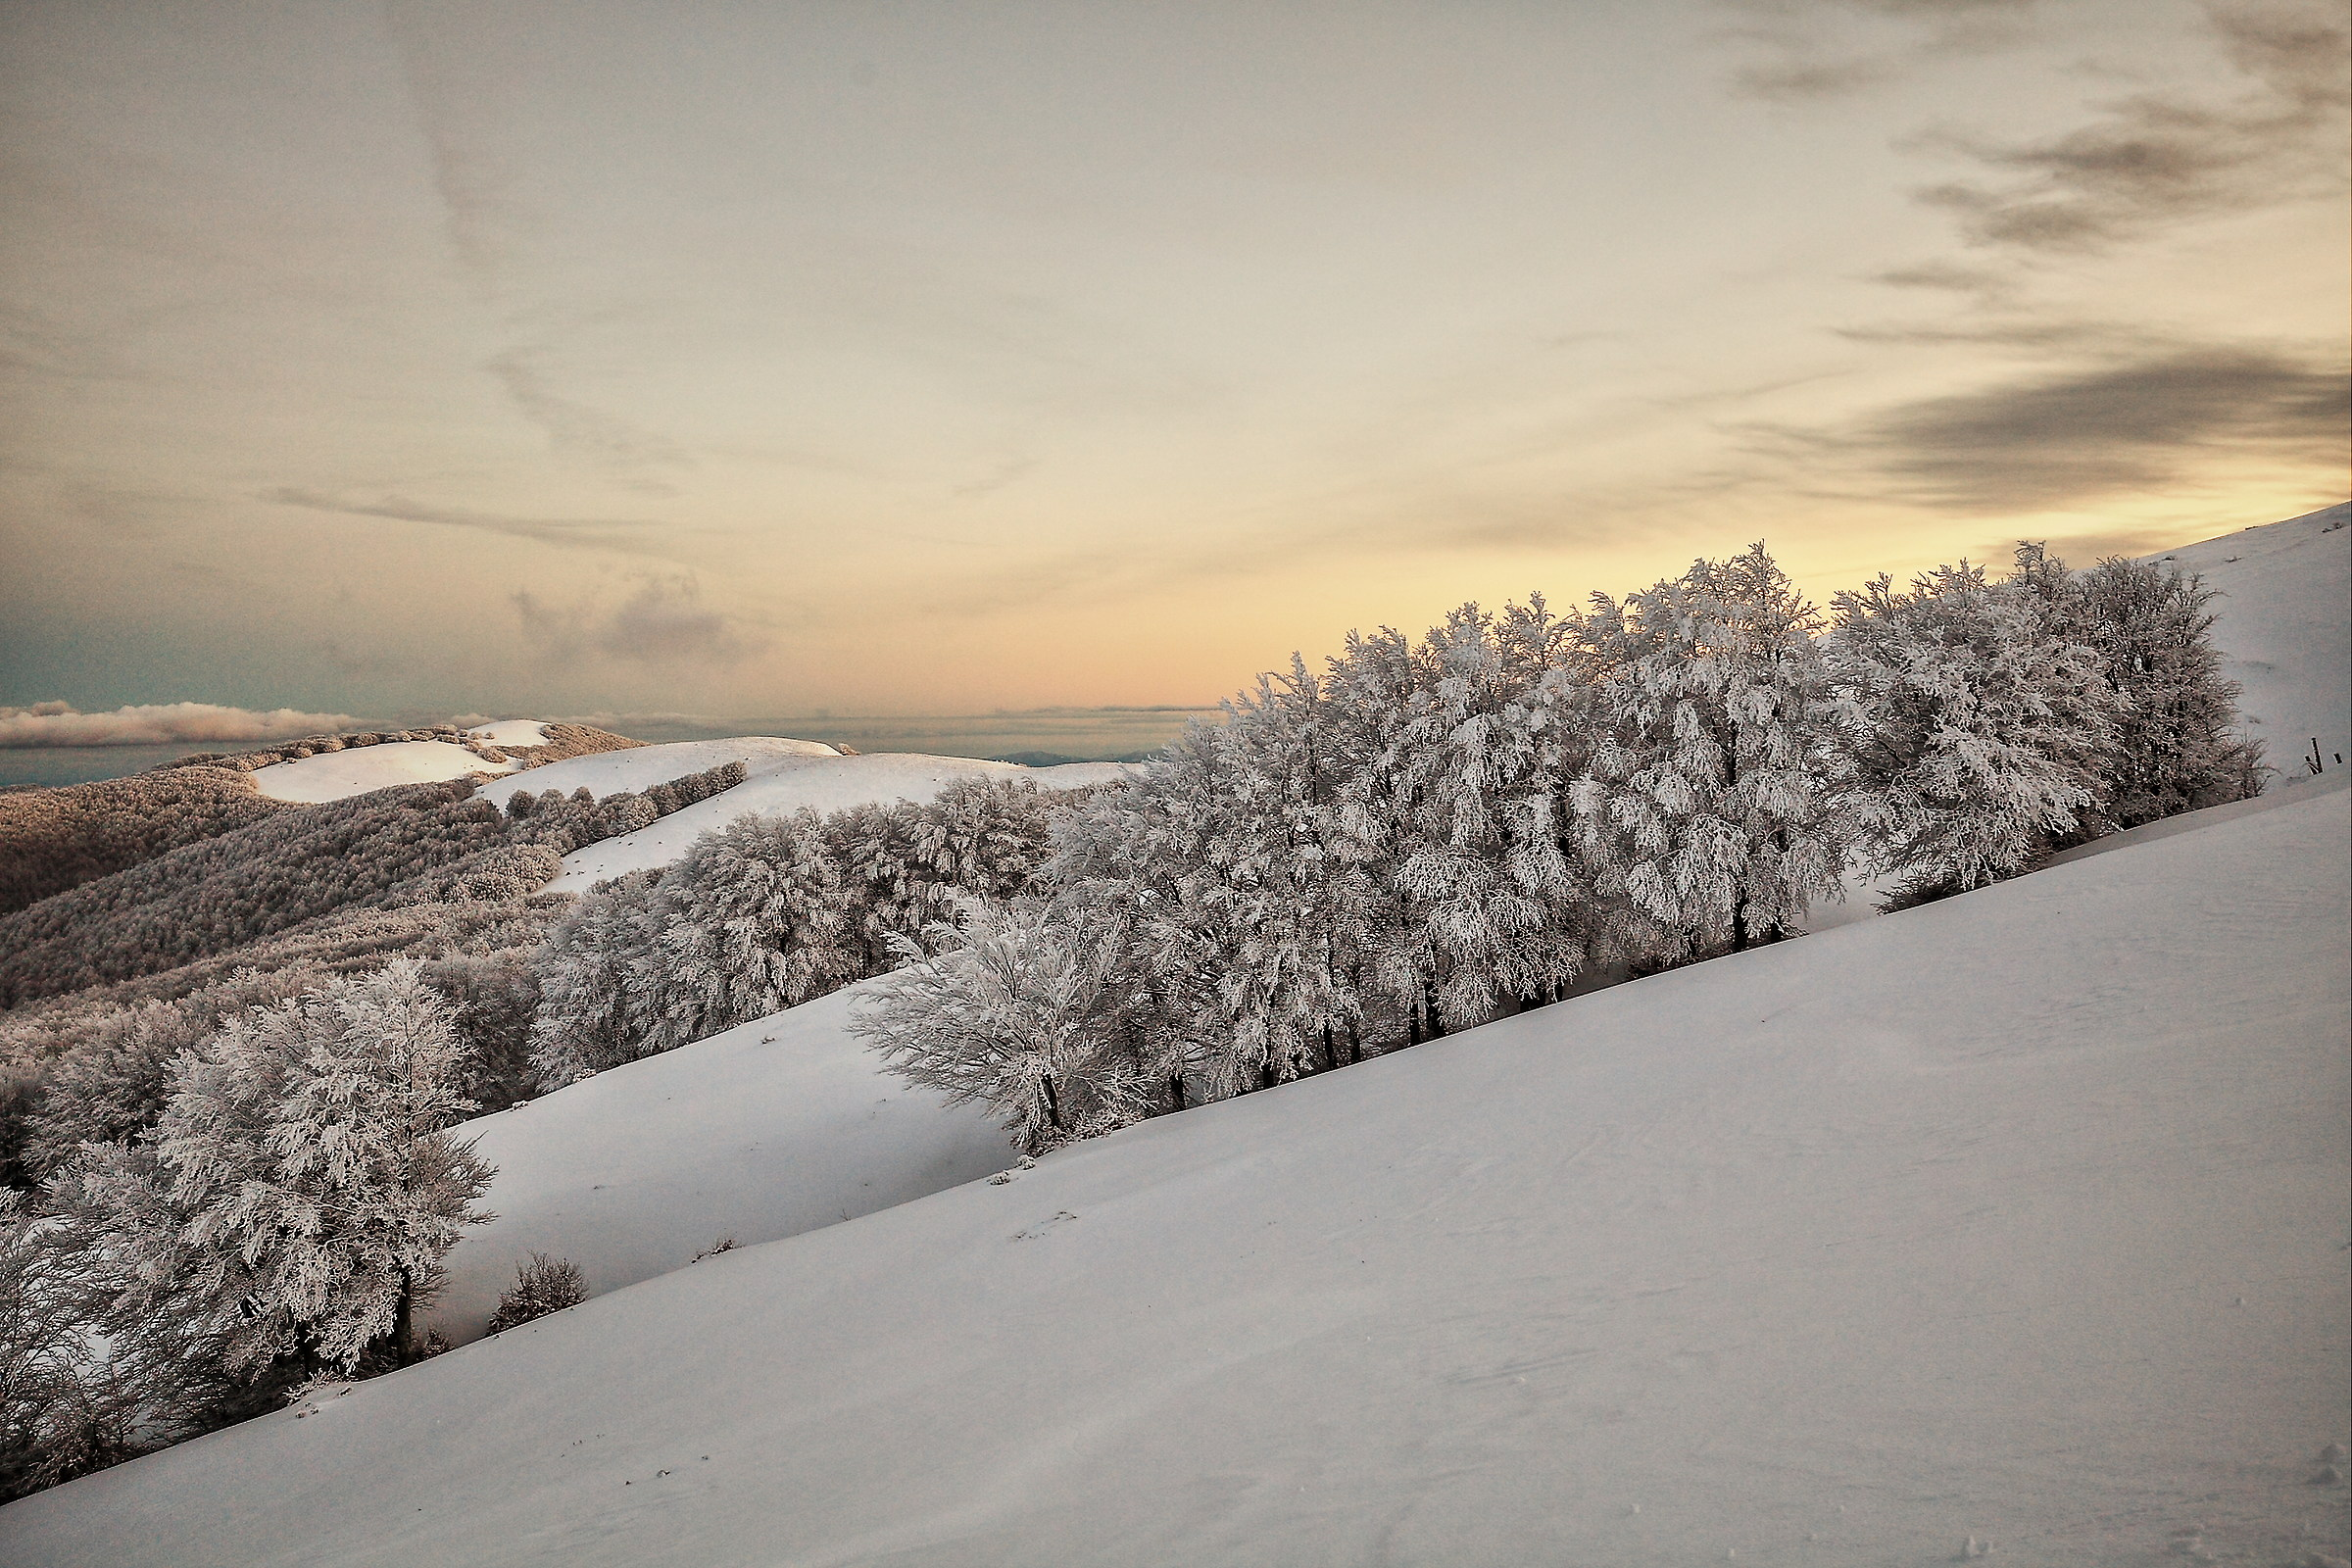 Snowy sunset in the Pratomagno...